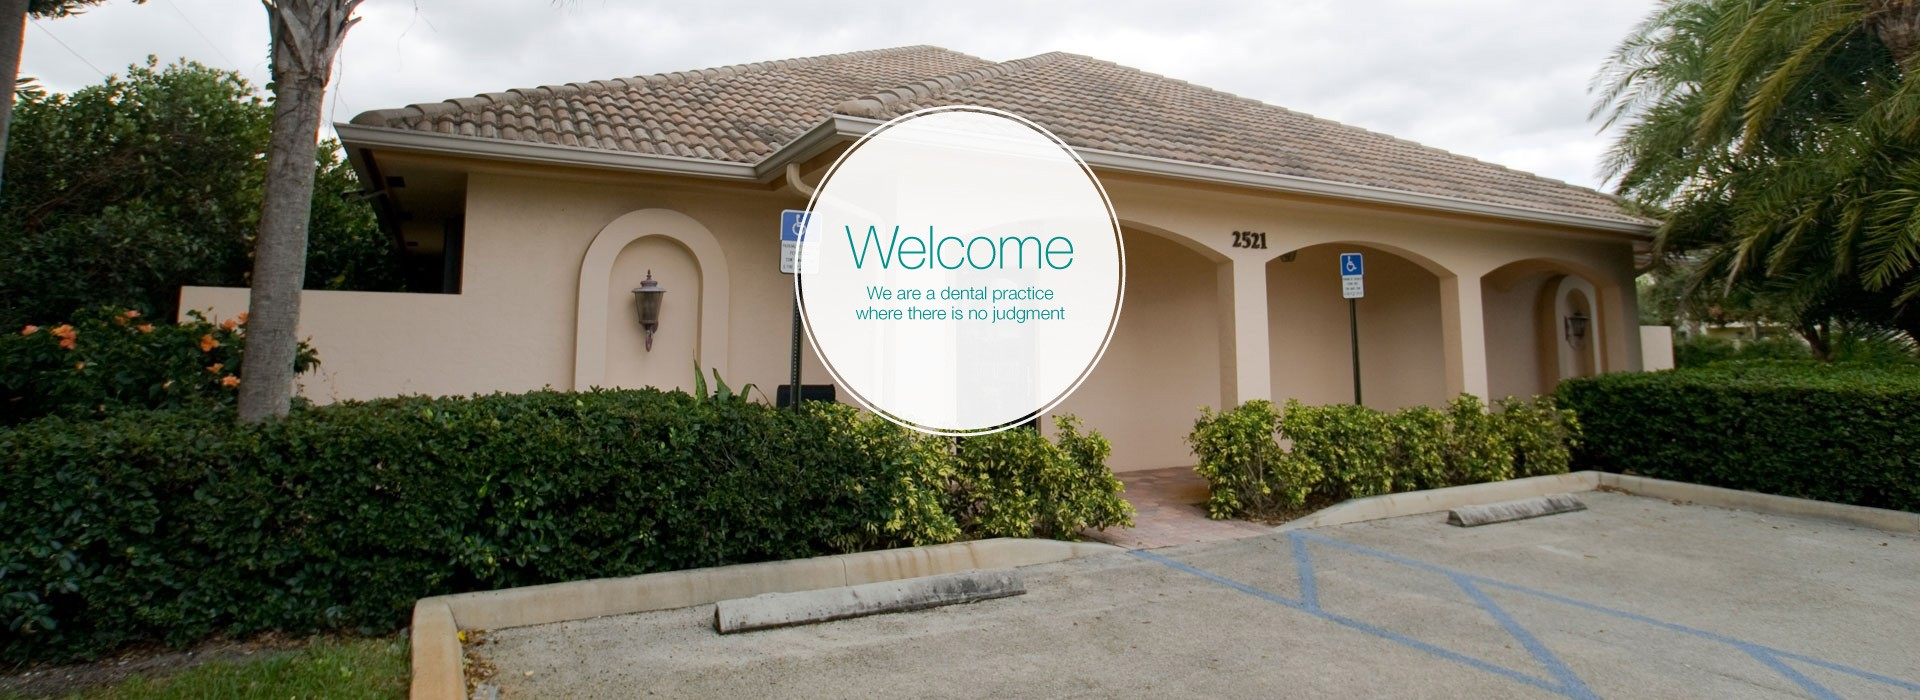 Welcome to Recovery Dentistry, serving the addiction recovery community of the Delray Beach, Palm Beach, Boca Raton, Lake Worth, and Boynton Beach areas